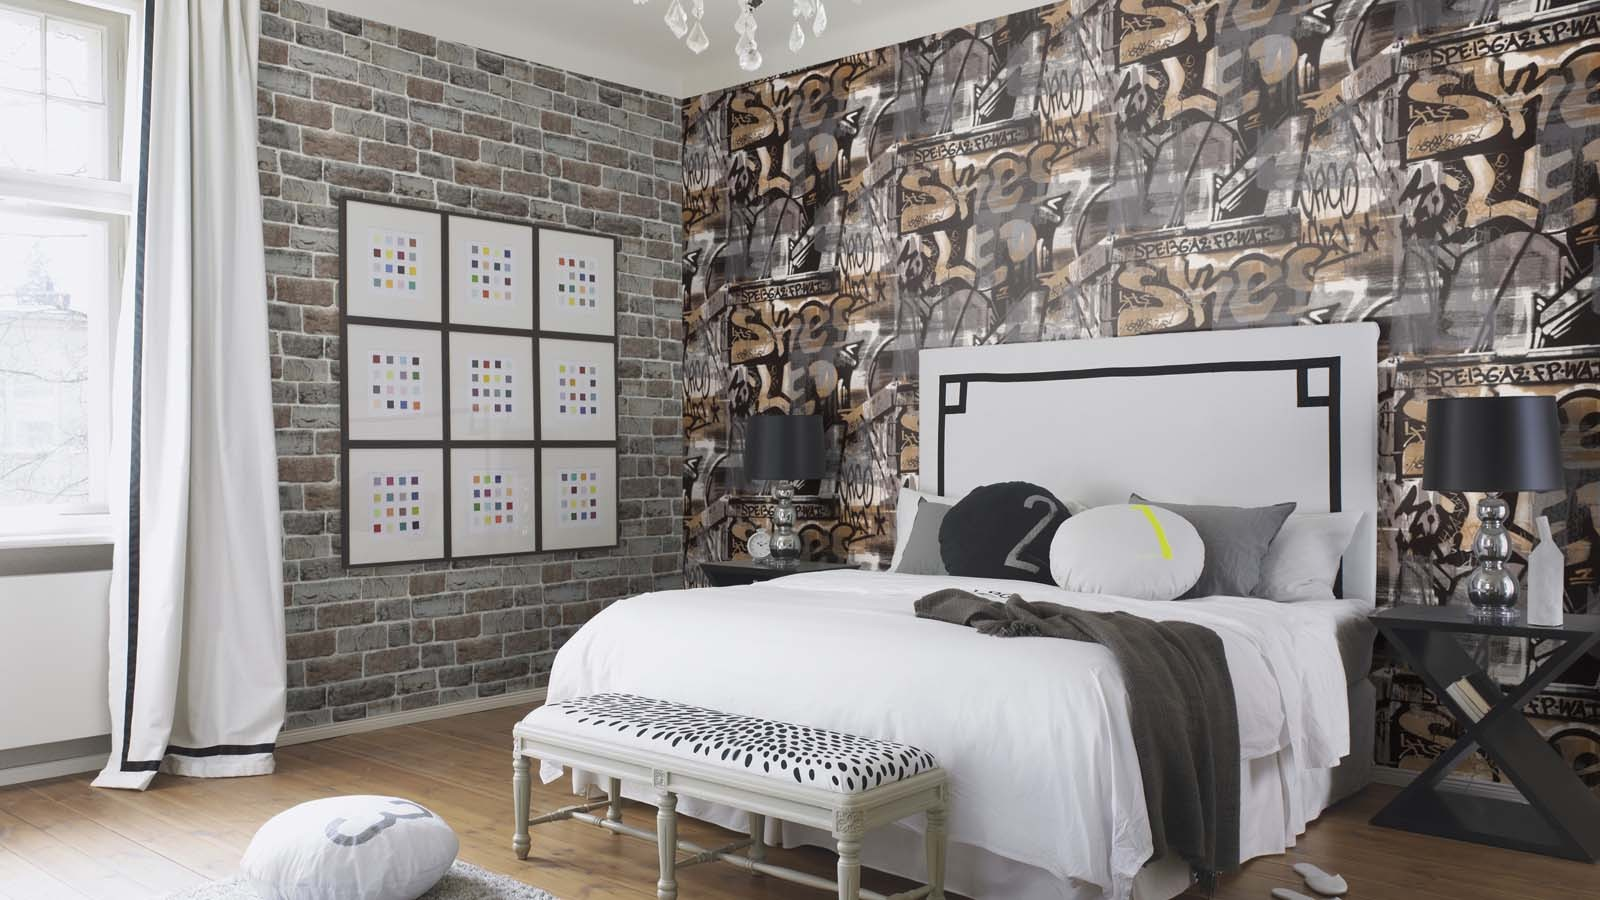 kids teens 2 gratisversand rechnungskauf. Black Bedroom Furniture Sets. Home Design Ideas